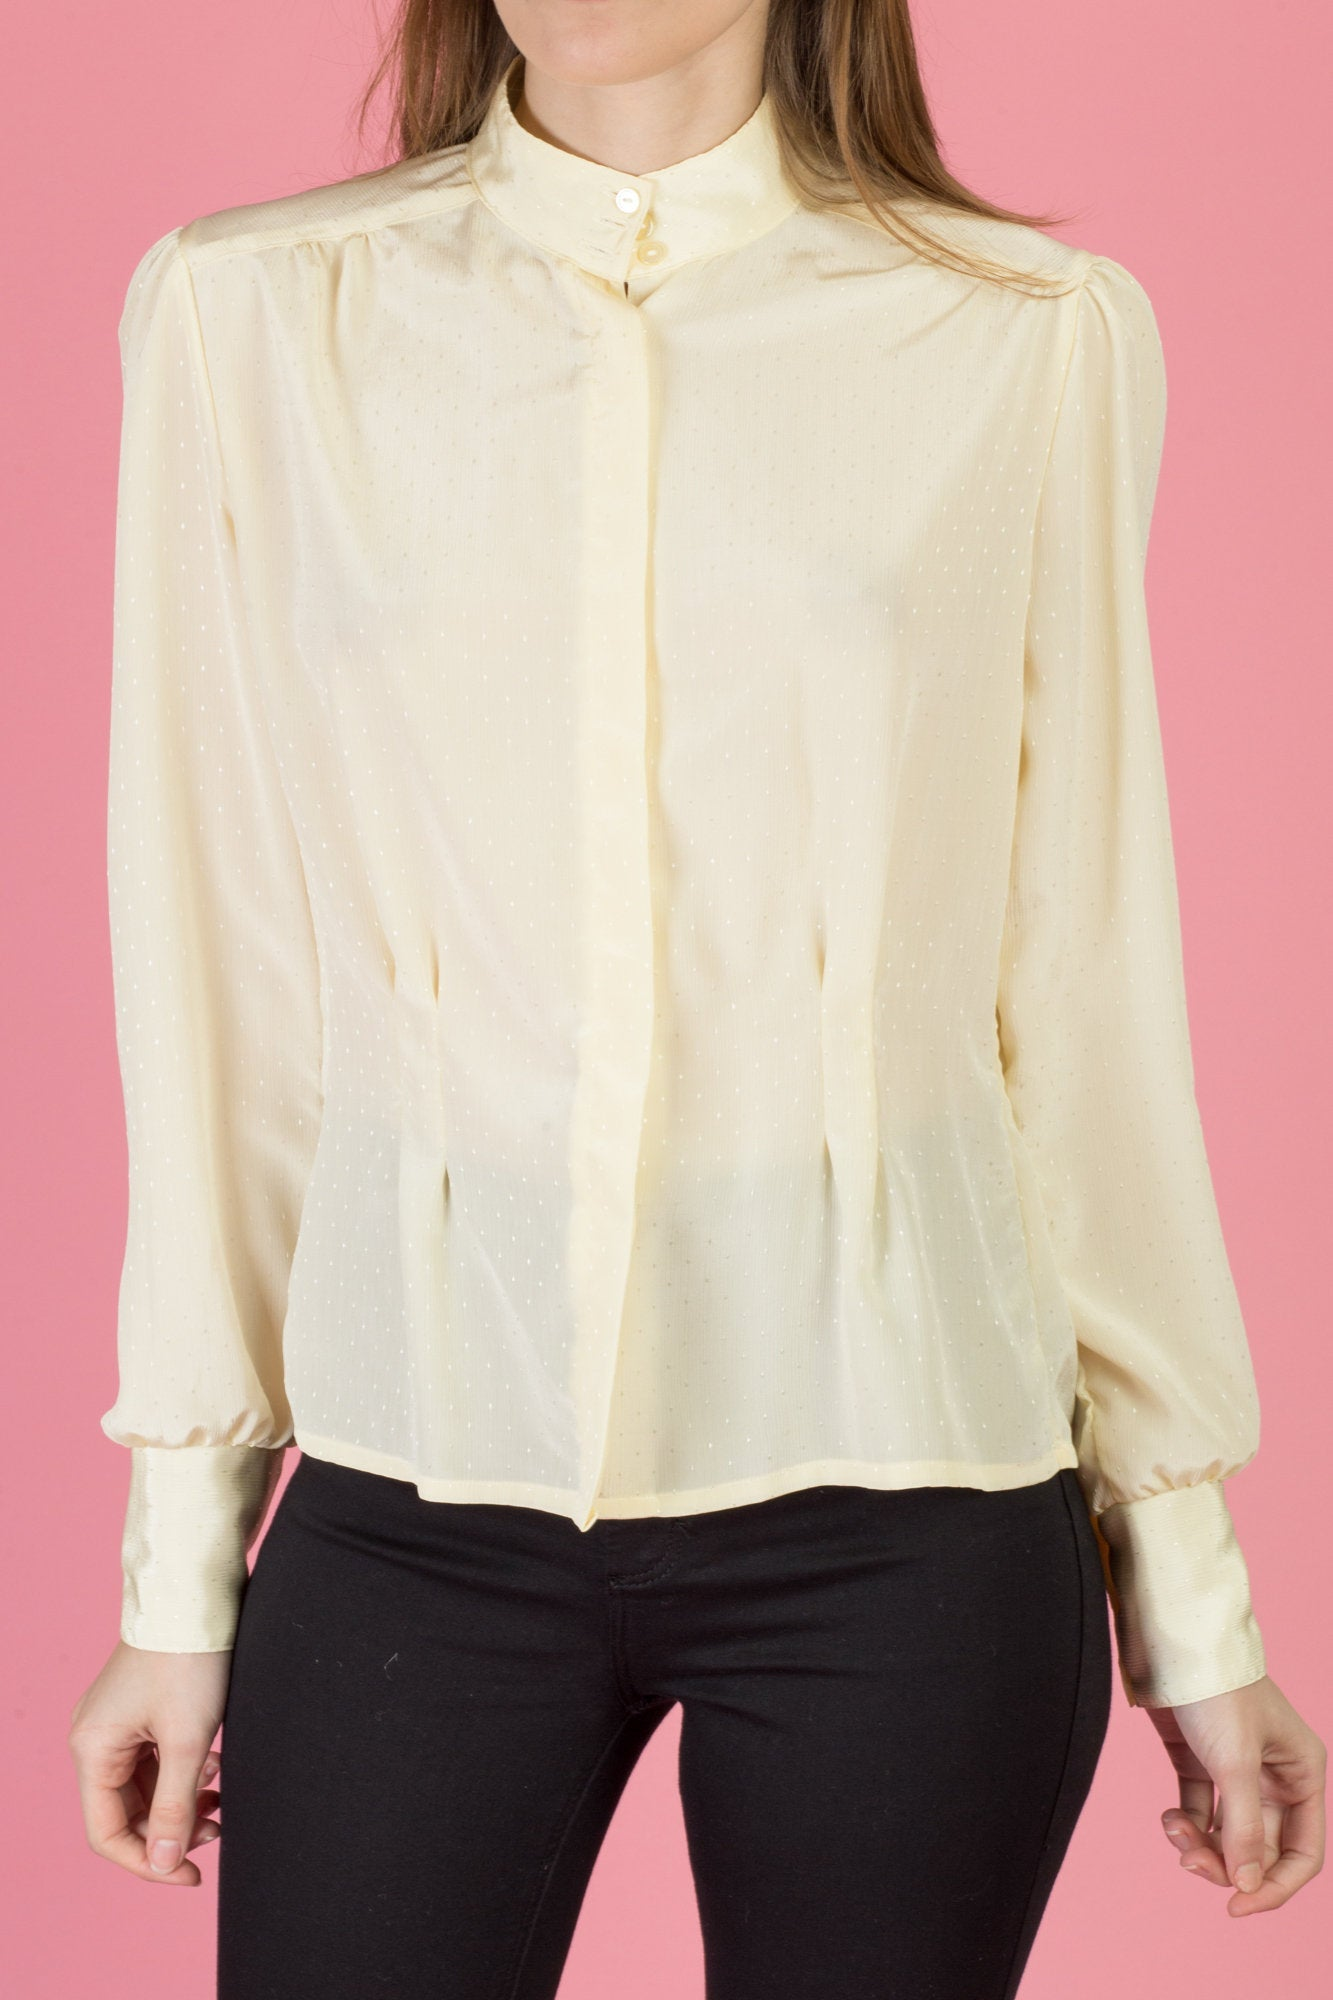 80s Ivory Button Up Nipped Waist Blouse - Medium